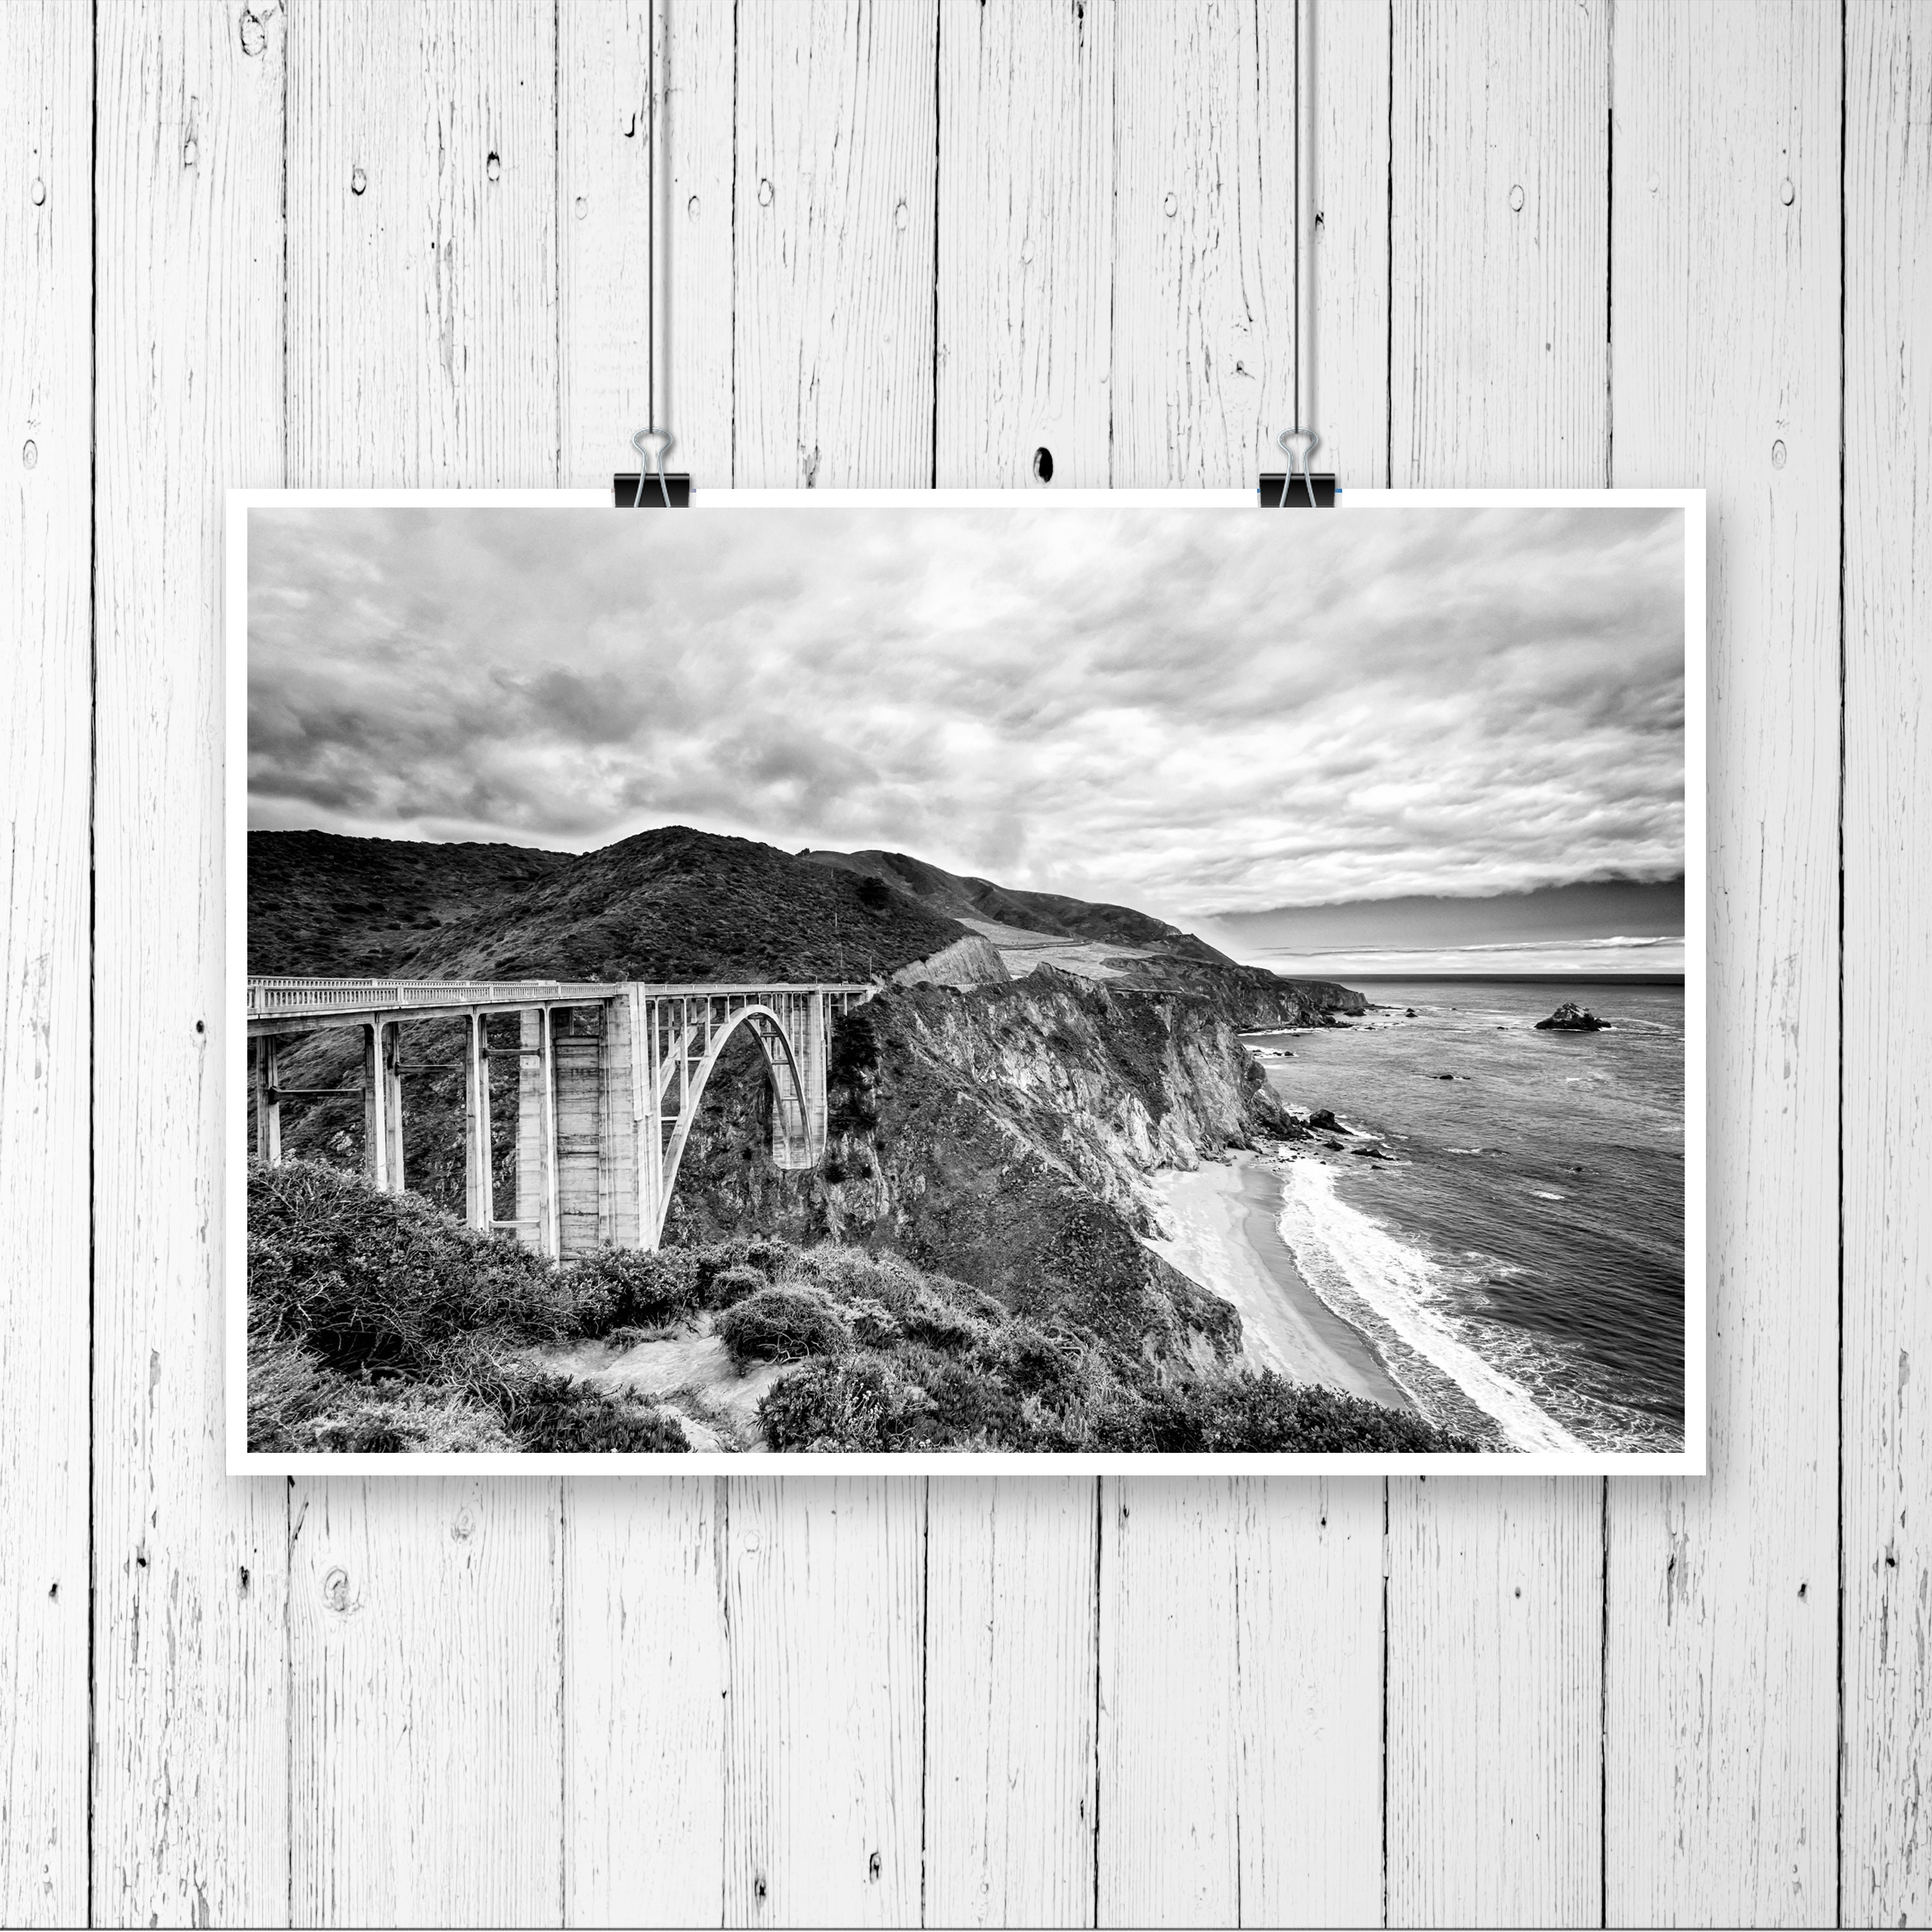 Big sur bixby bridge black and white photography print california landscape fine art wall art decor also available on canvas or metal